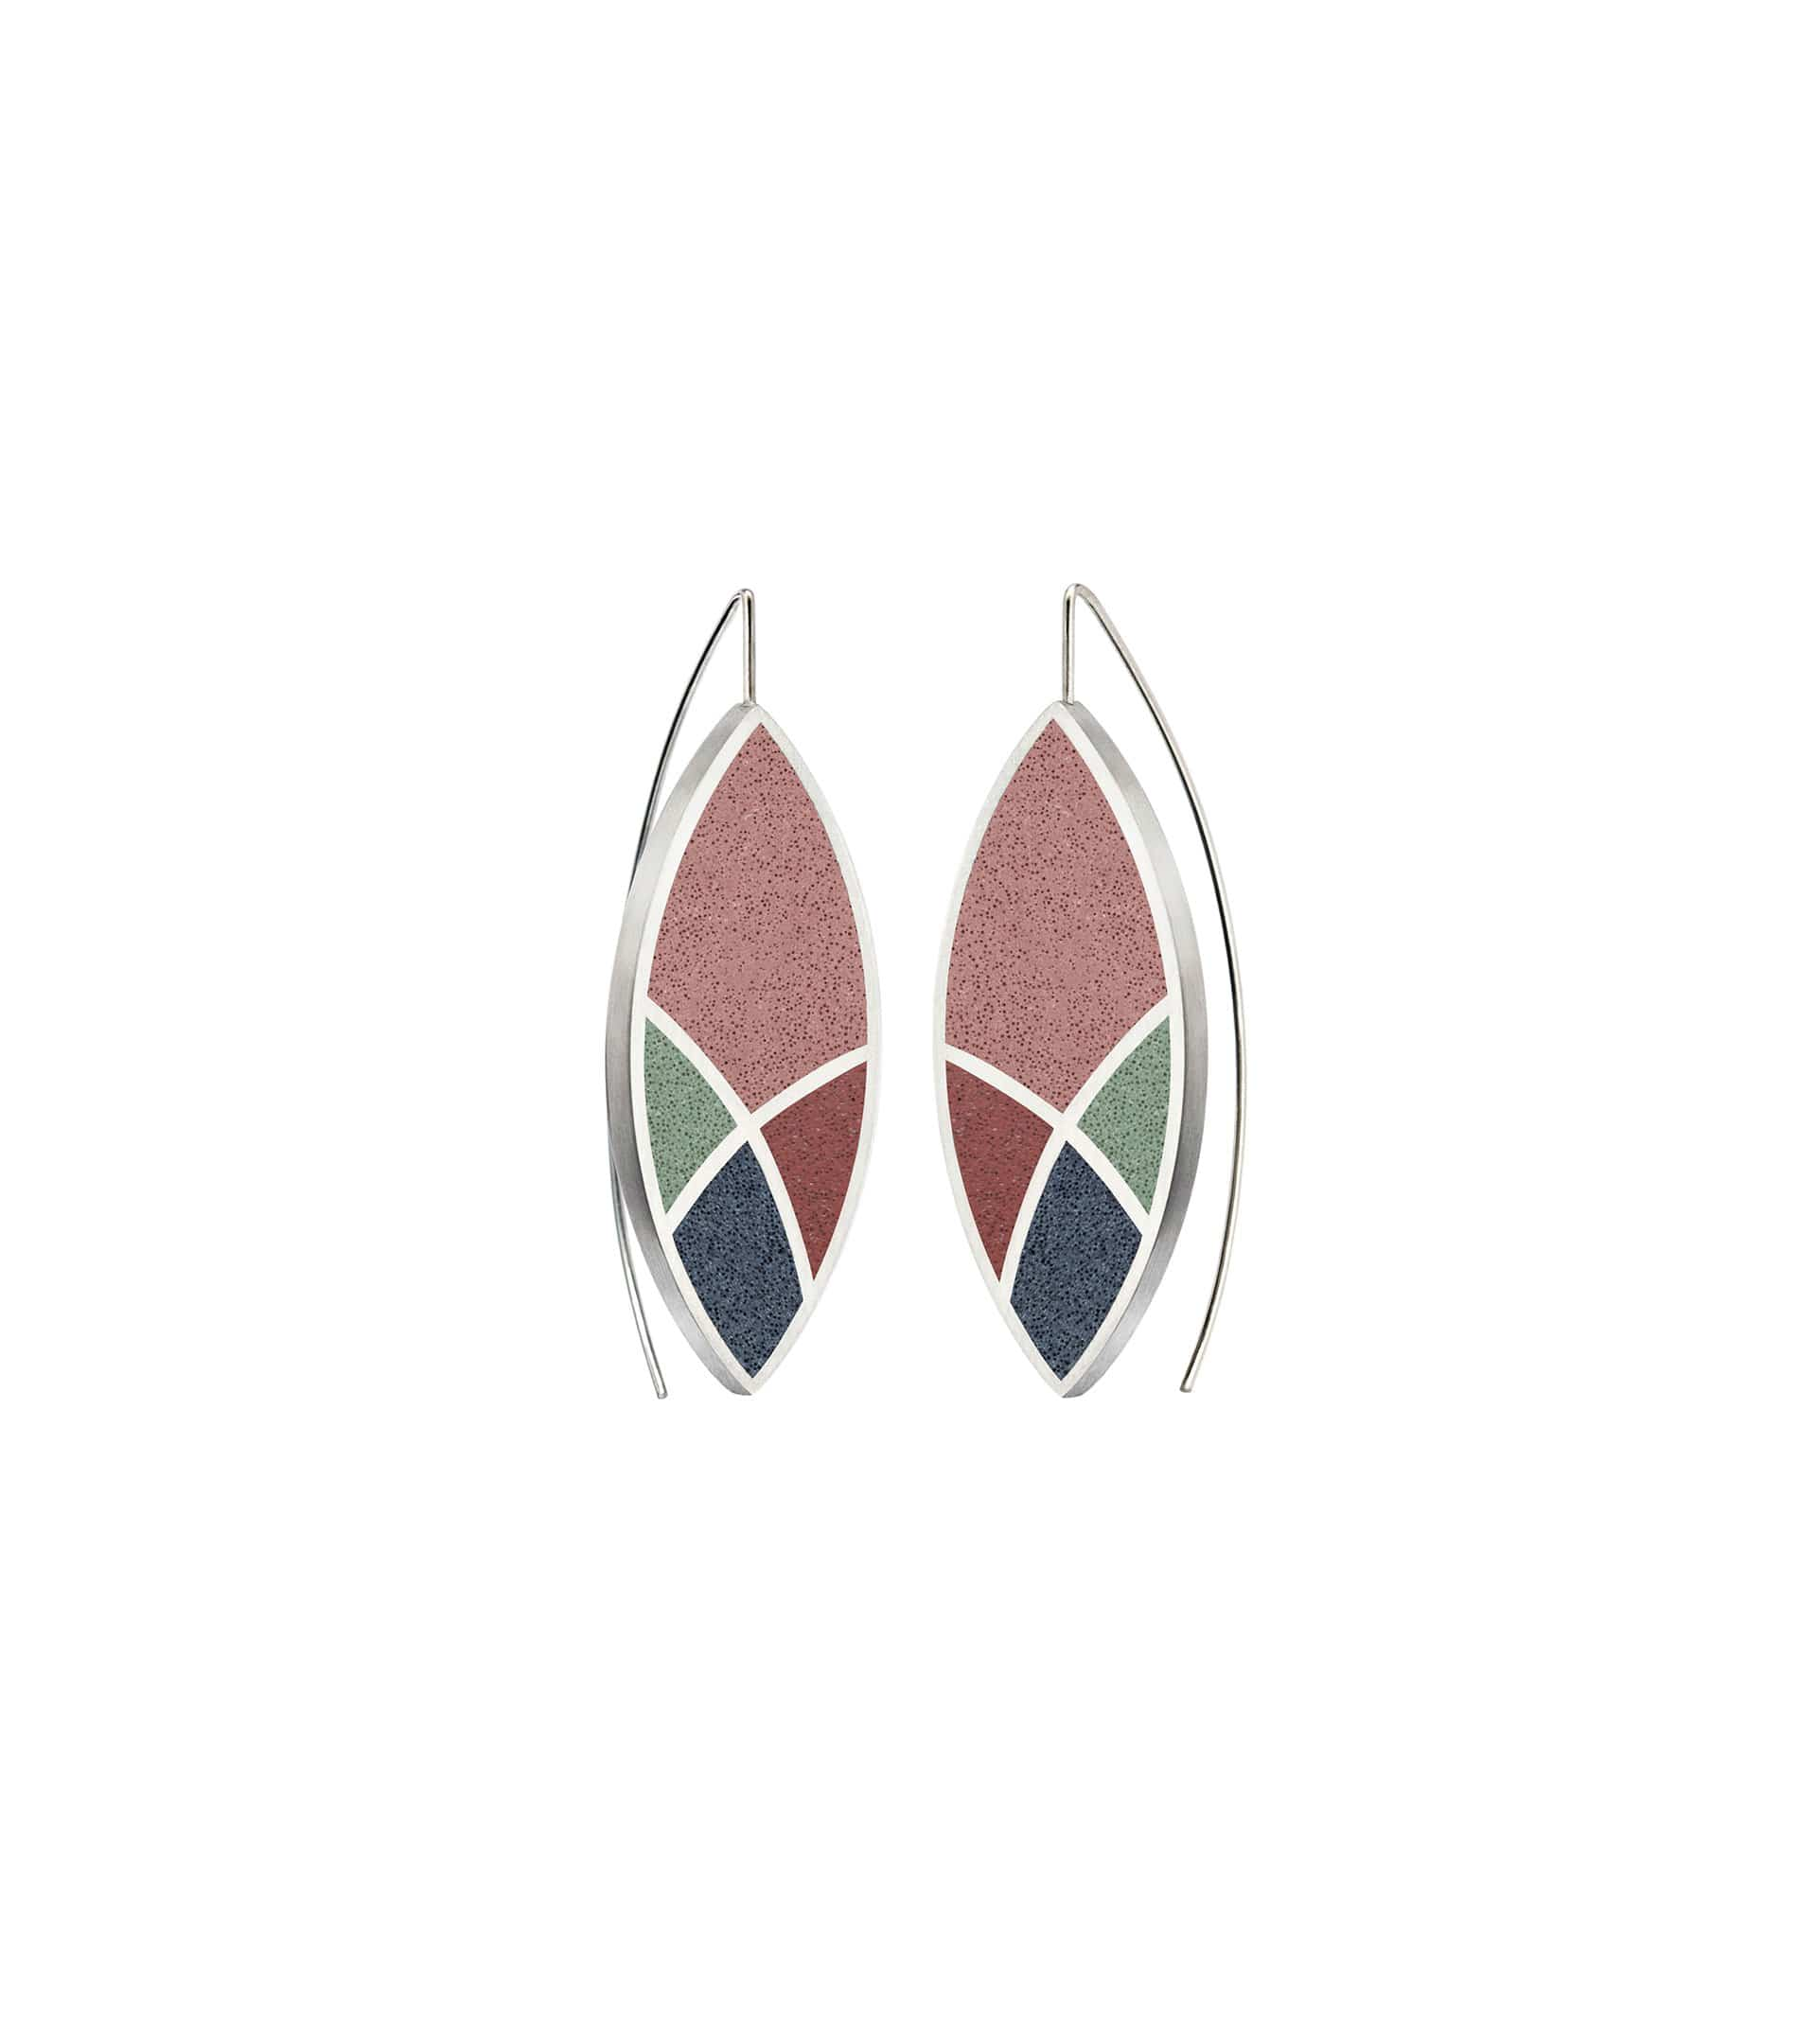 Konzuk Earrings March Balloons - Leaf Concrete Earring Drops 3